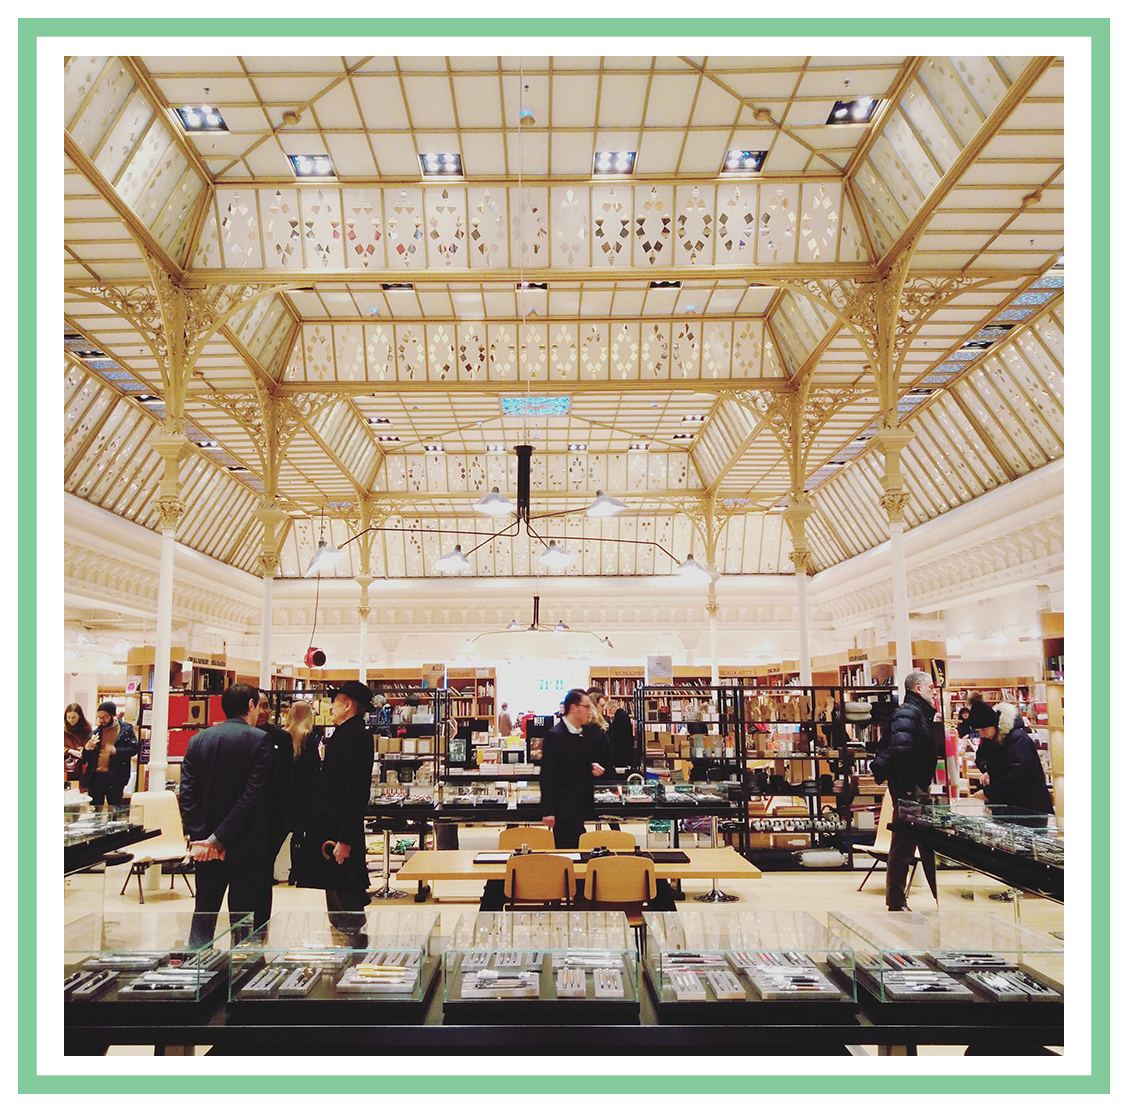 Le Bon Marché, Stationery in Paris